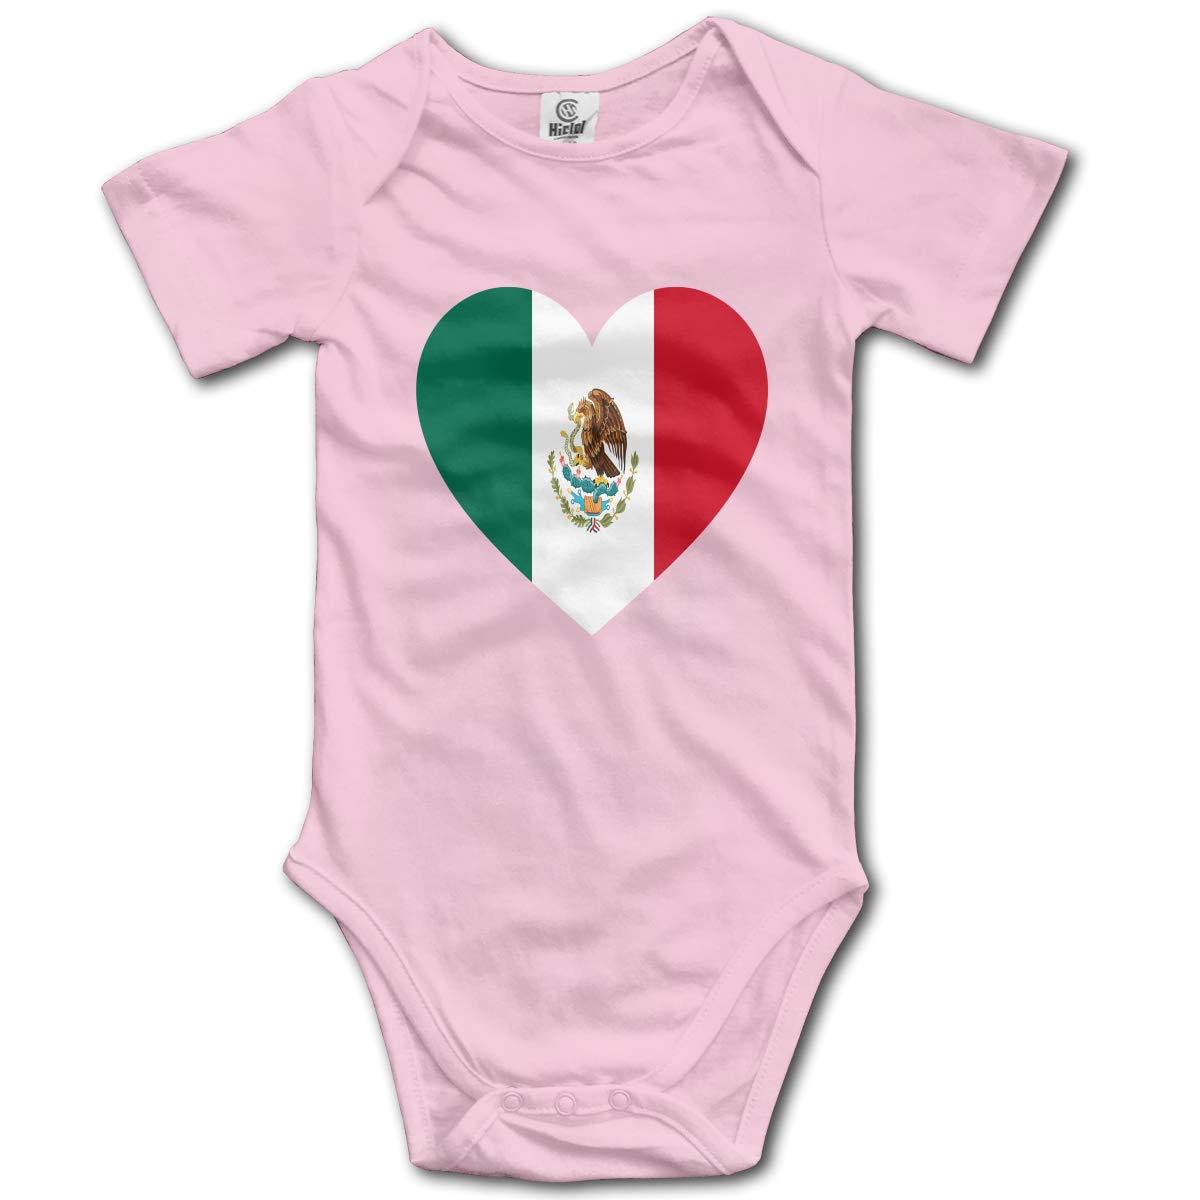 Baby Short-Sleeve Onesies Love Mexico Flag Bodysuit Baby Outfits